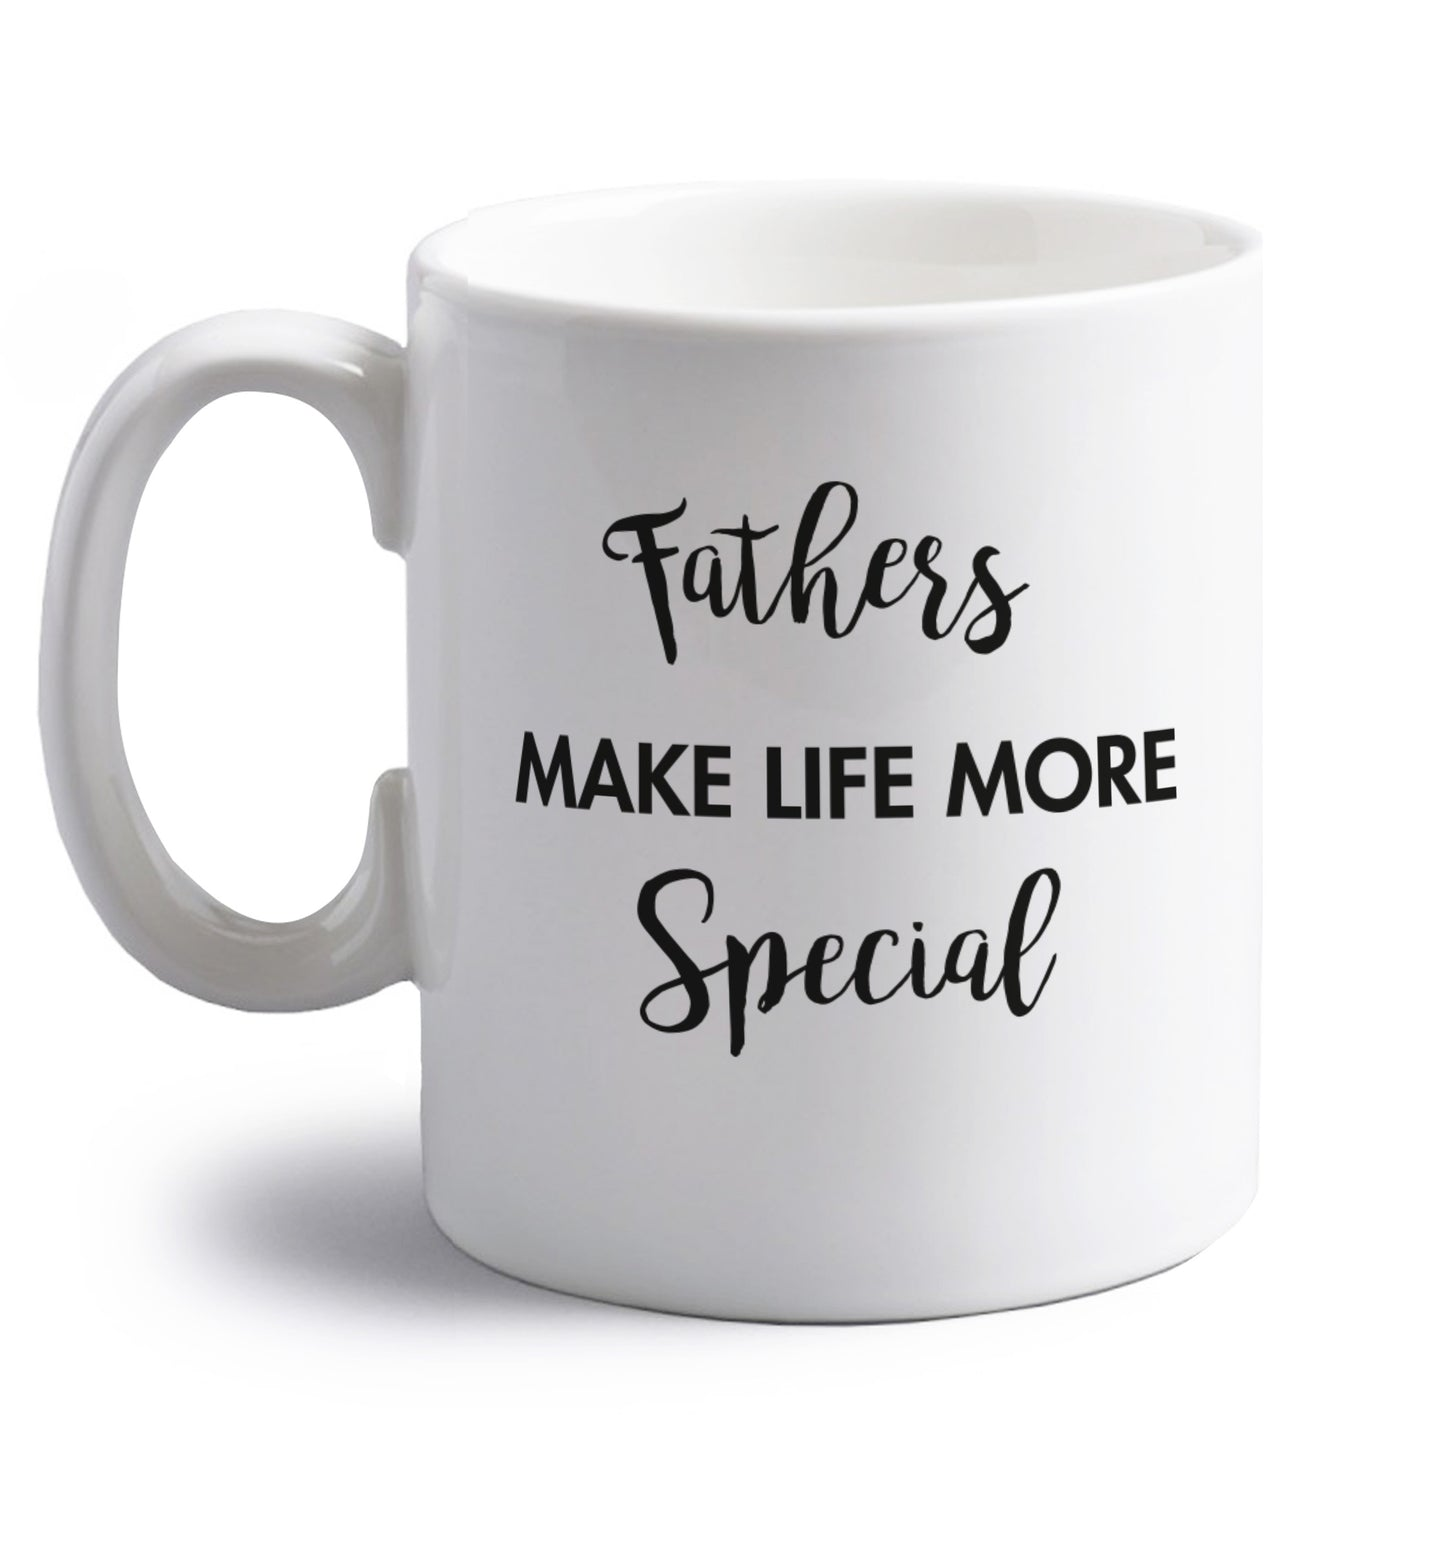 Fathers make life more special right handed white ceramic mug